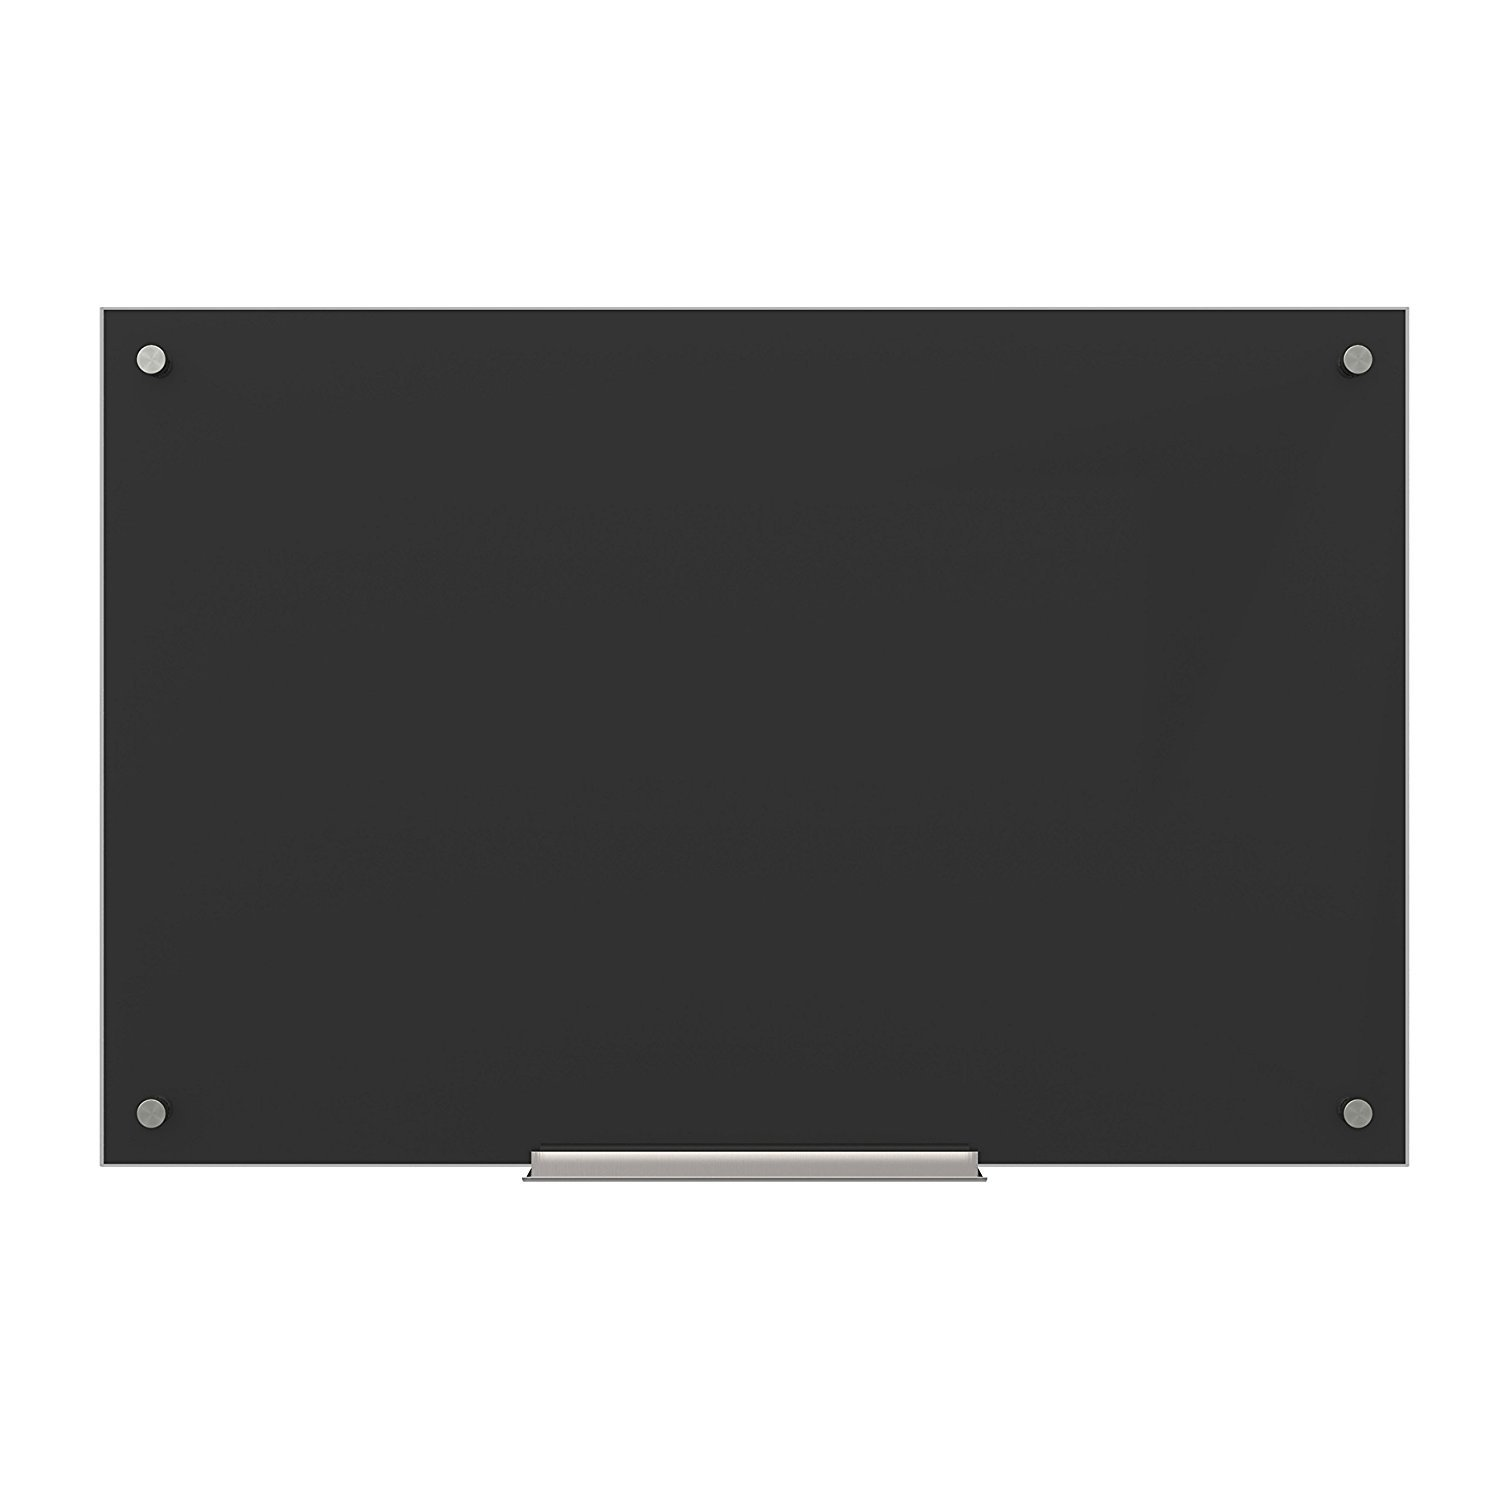 U Brands Glass Dry Erase Board, 35 x 23 Inches, Black Surface, Frameless